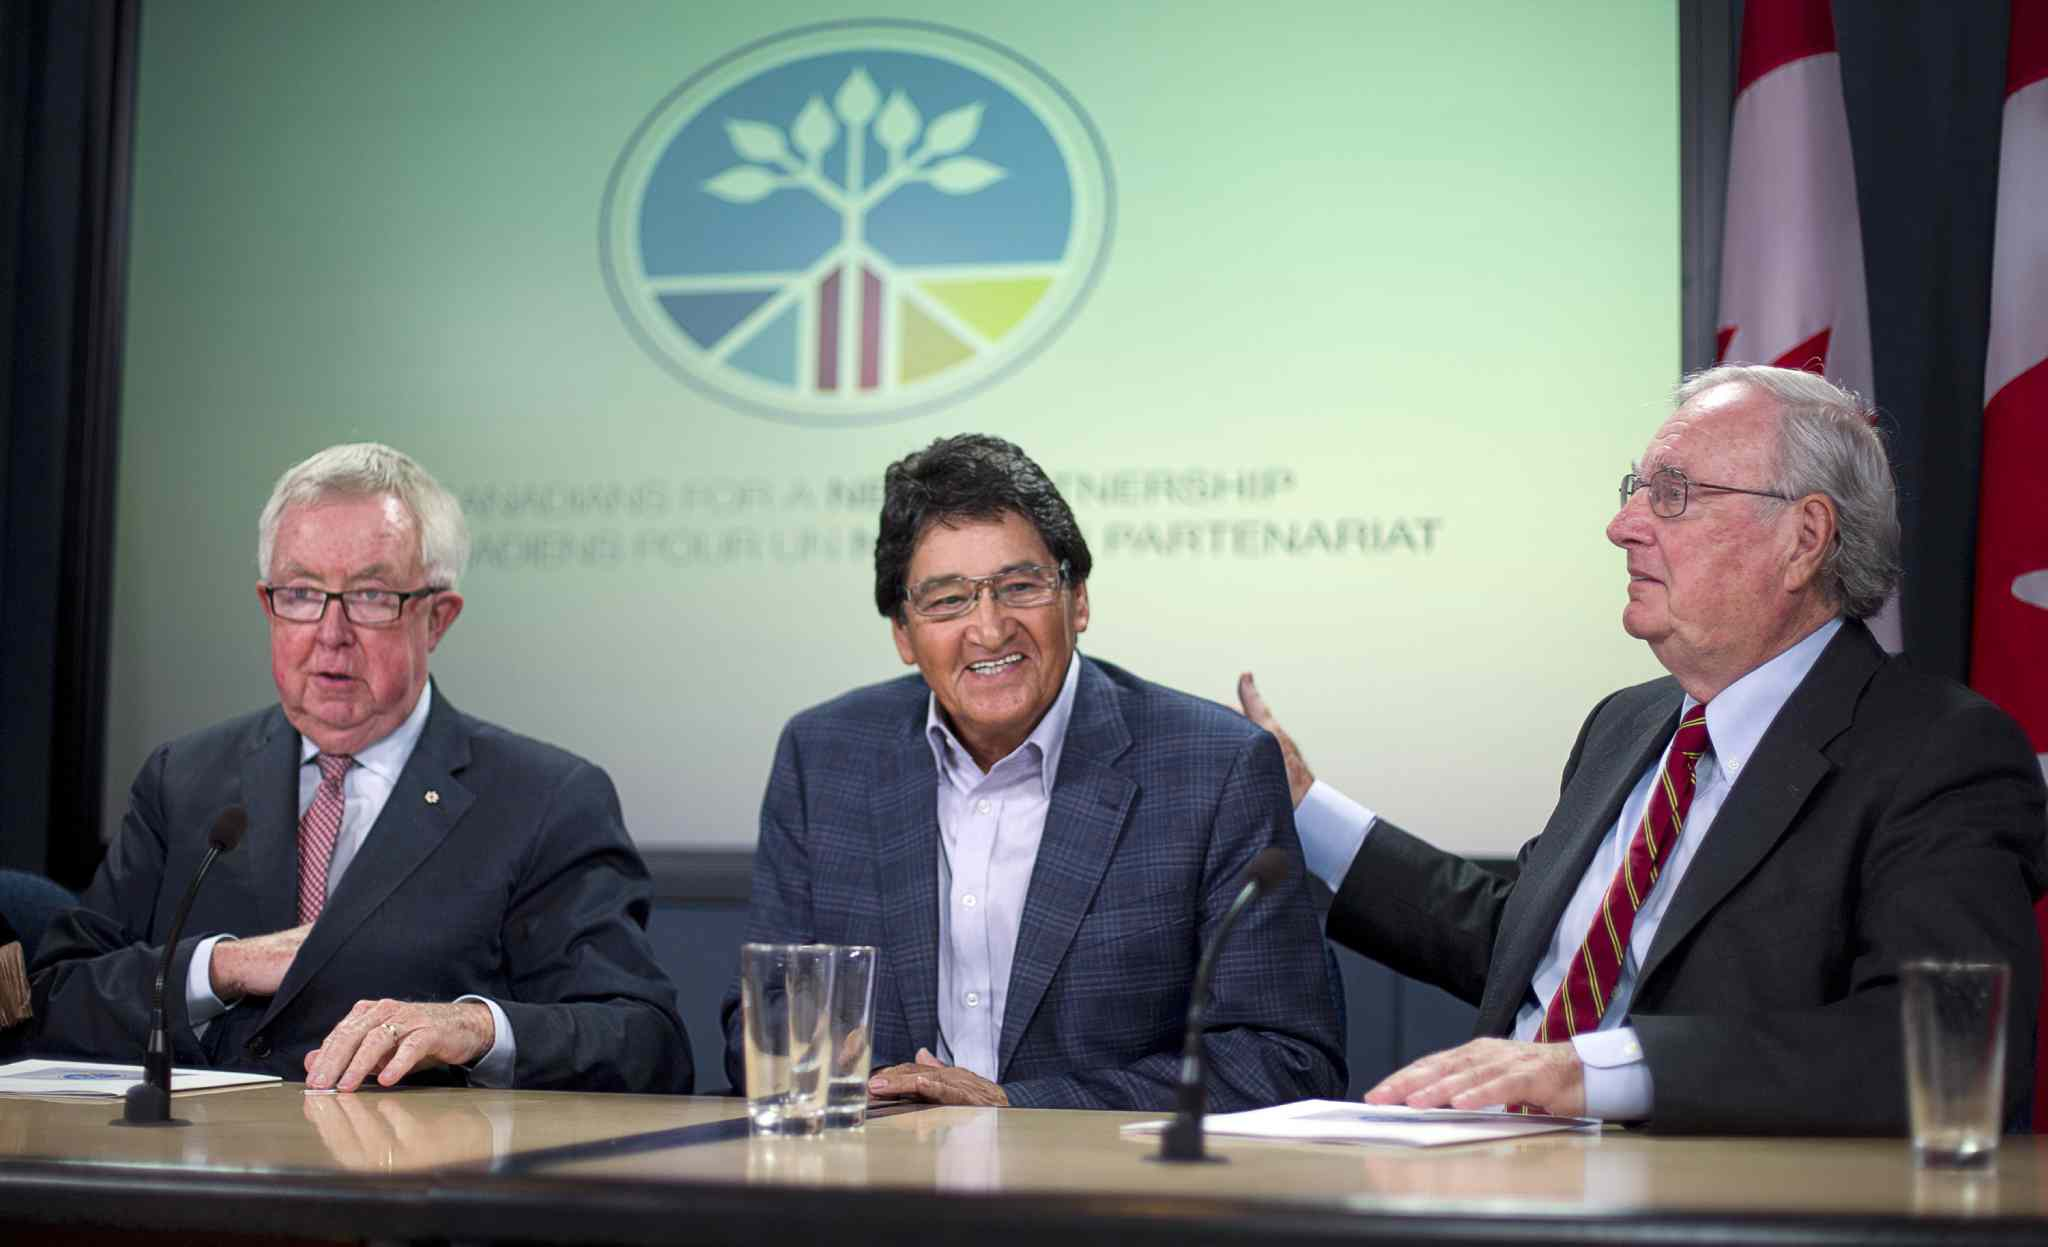 Former Prime Minister Joe Clark, former Assembly of First Nation Chief Ovide Mercredi and former Prime Minister Paul Martin (left to right) conclude a news conference in Ottawa Thursday, Sept. 4, 2014. The former prime ministers and aboriginal leaders are joining forces in a bid to ease tensions between aboriginal and non-aboriginal groups.